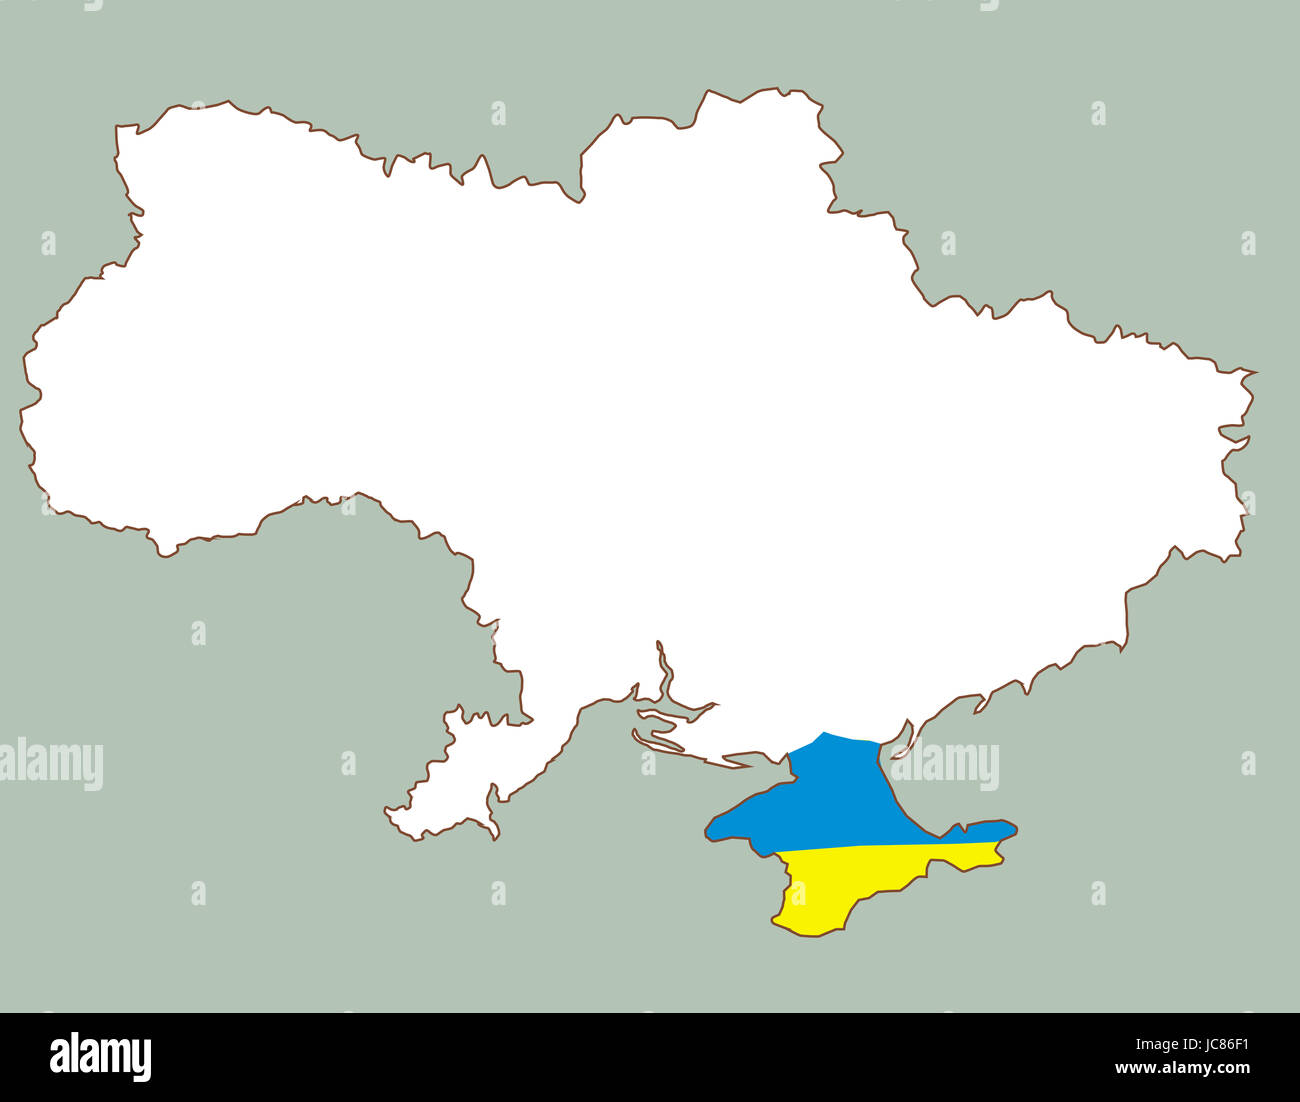 Crimea Map Vector Stock Photos Crimea Map Vector Stock Images Alamy